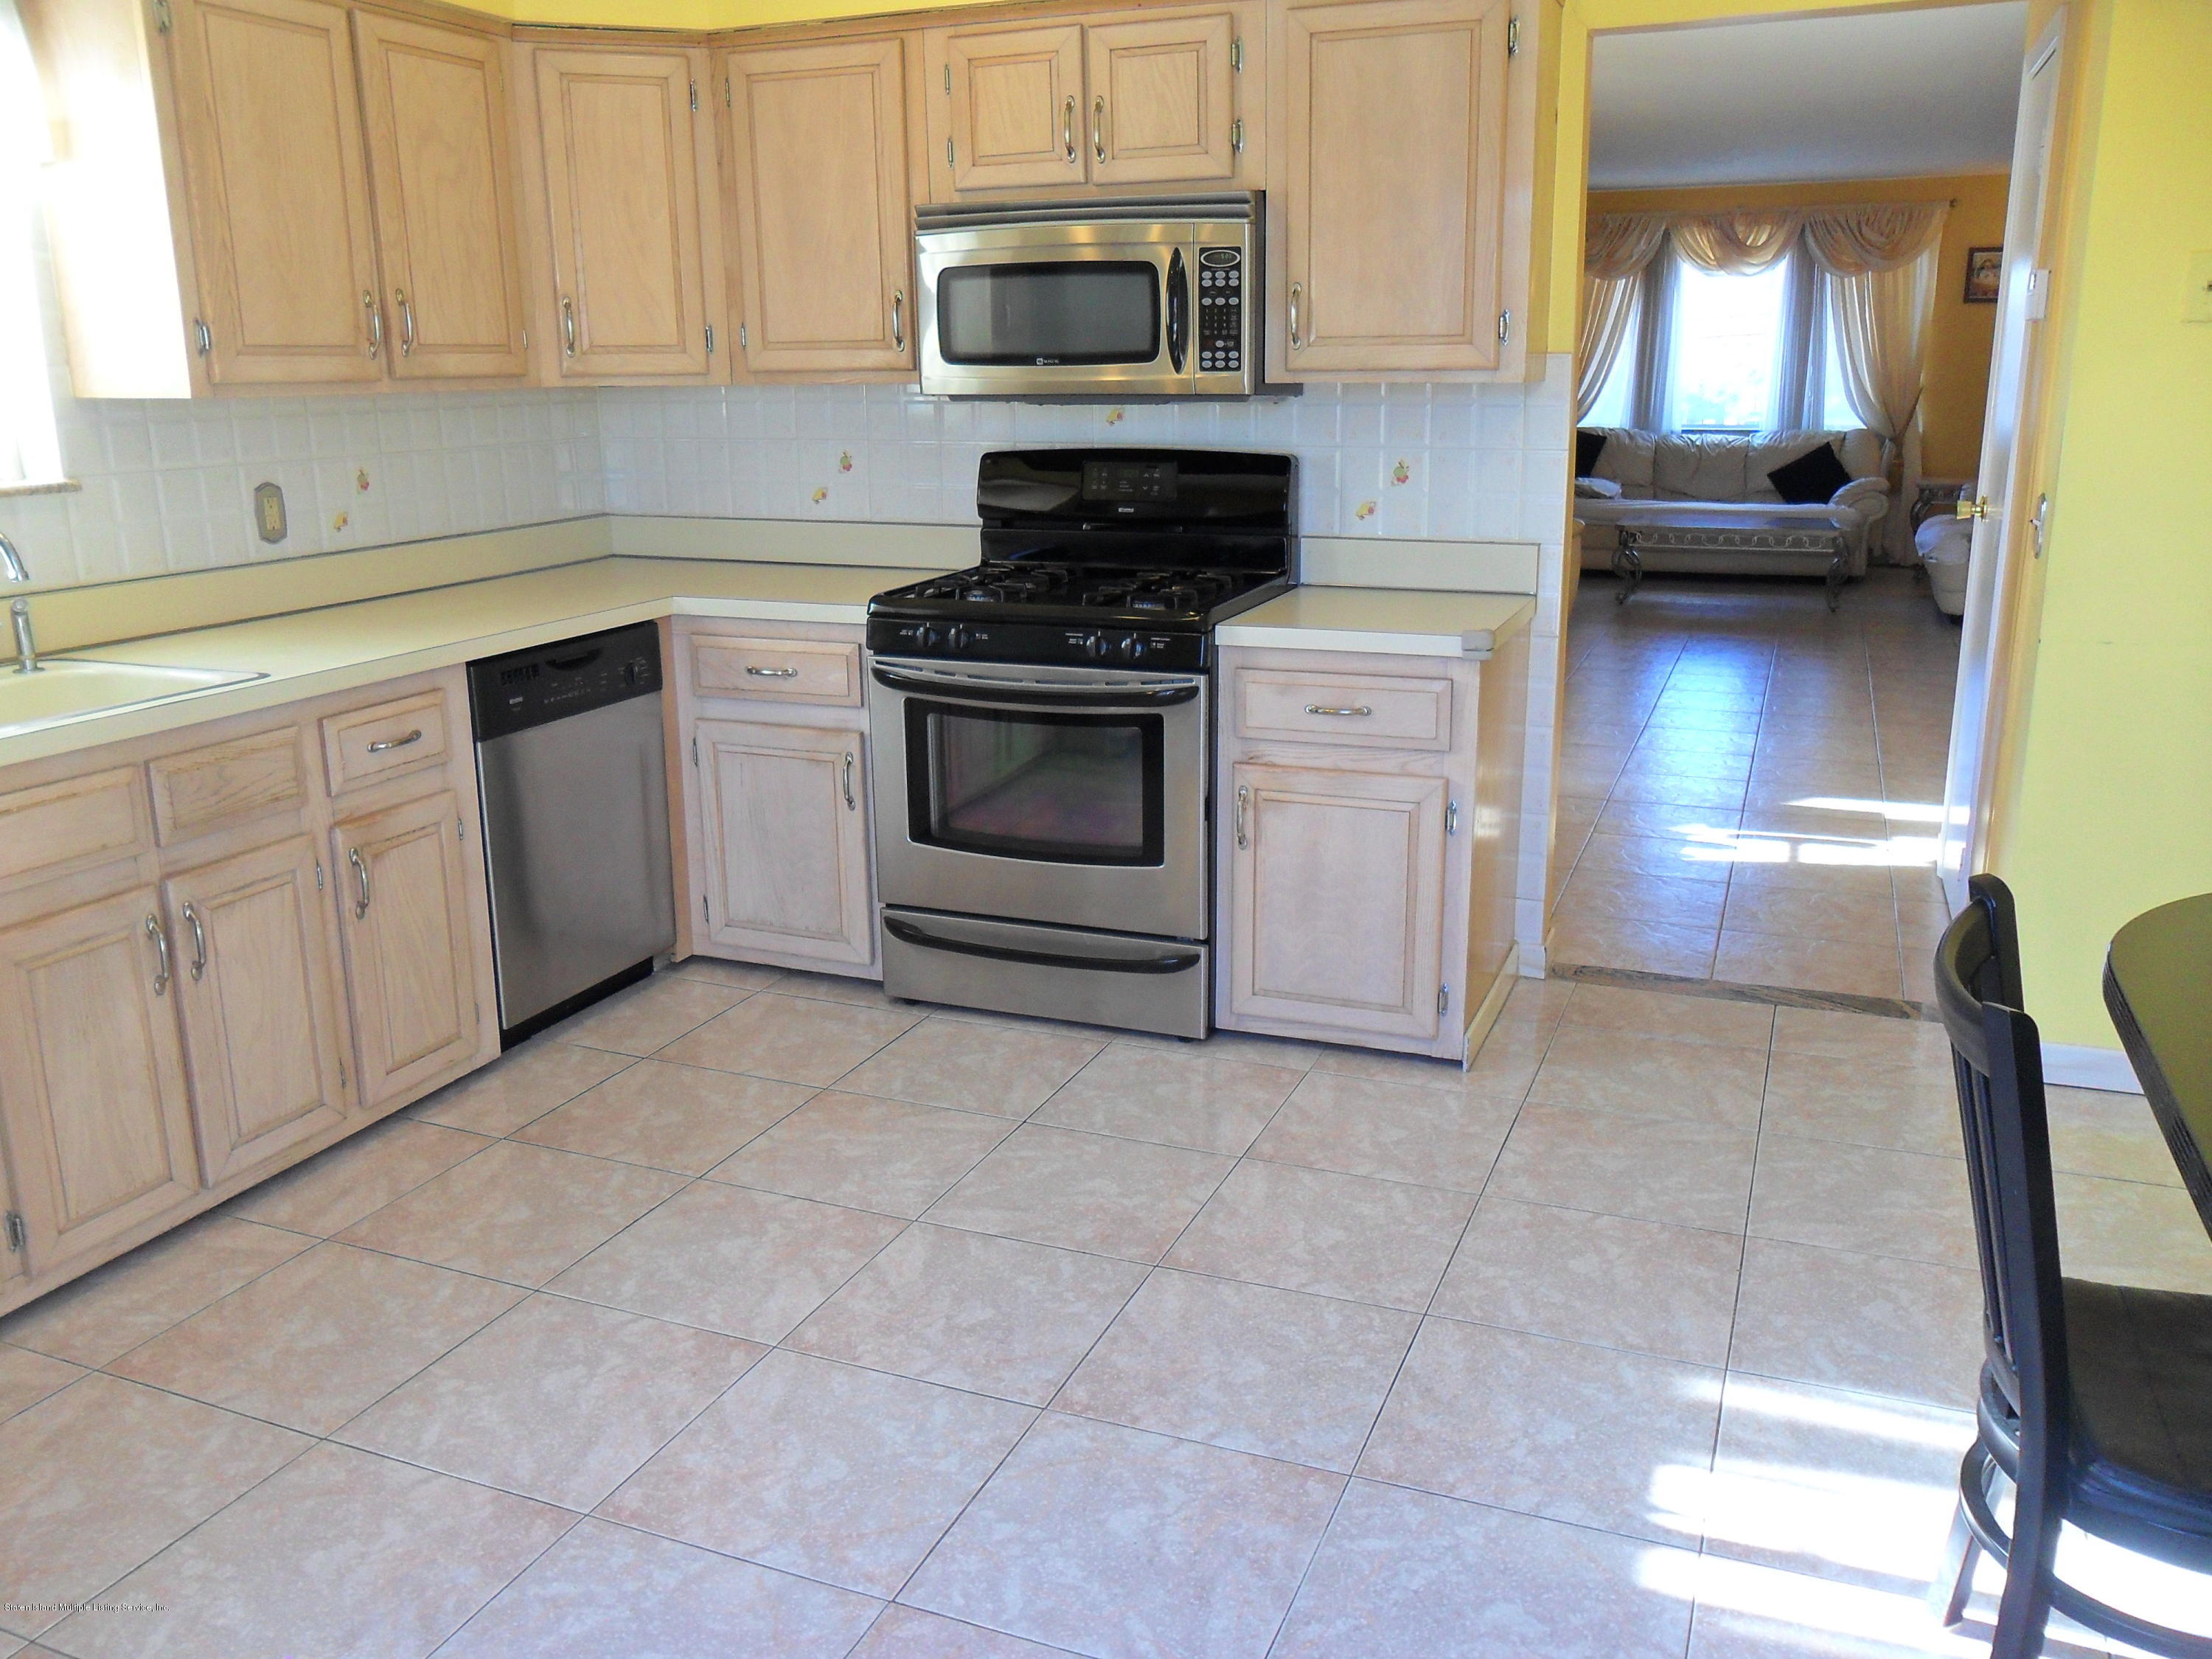 Single Family - Semi-Attached 50 Forest Street  Staten Island, NY 10314, MLS-1127879-18